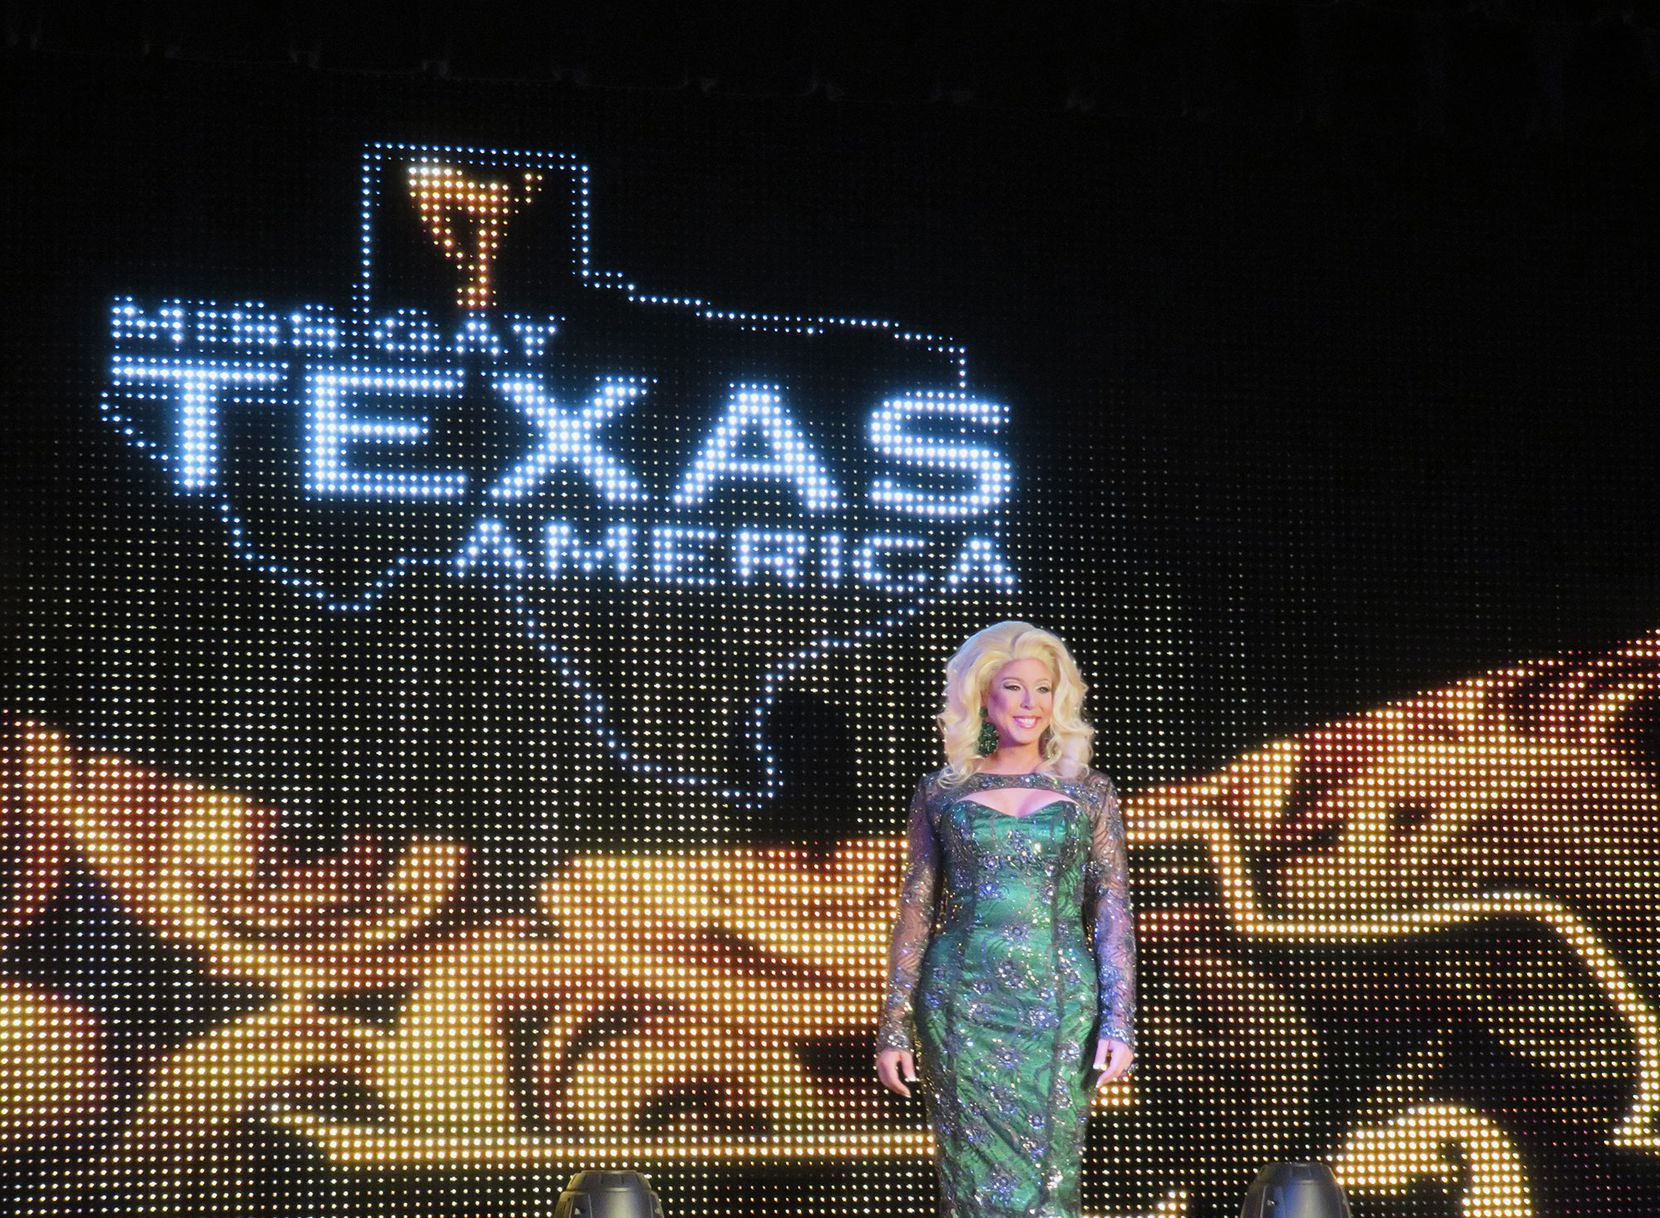 Arlington-based drag queen Tara St. Stone posing for the evening gown competition.